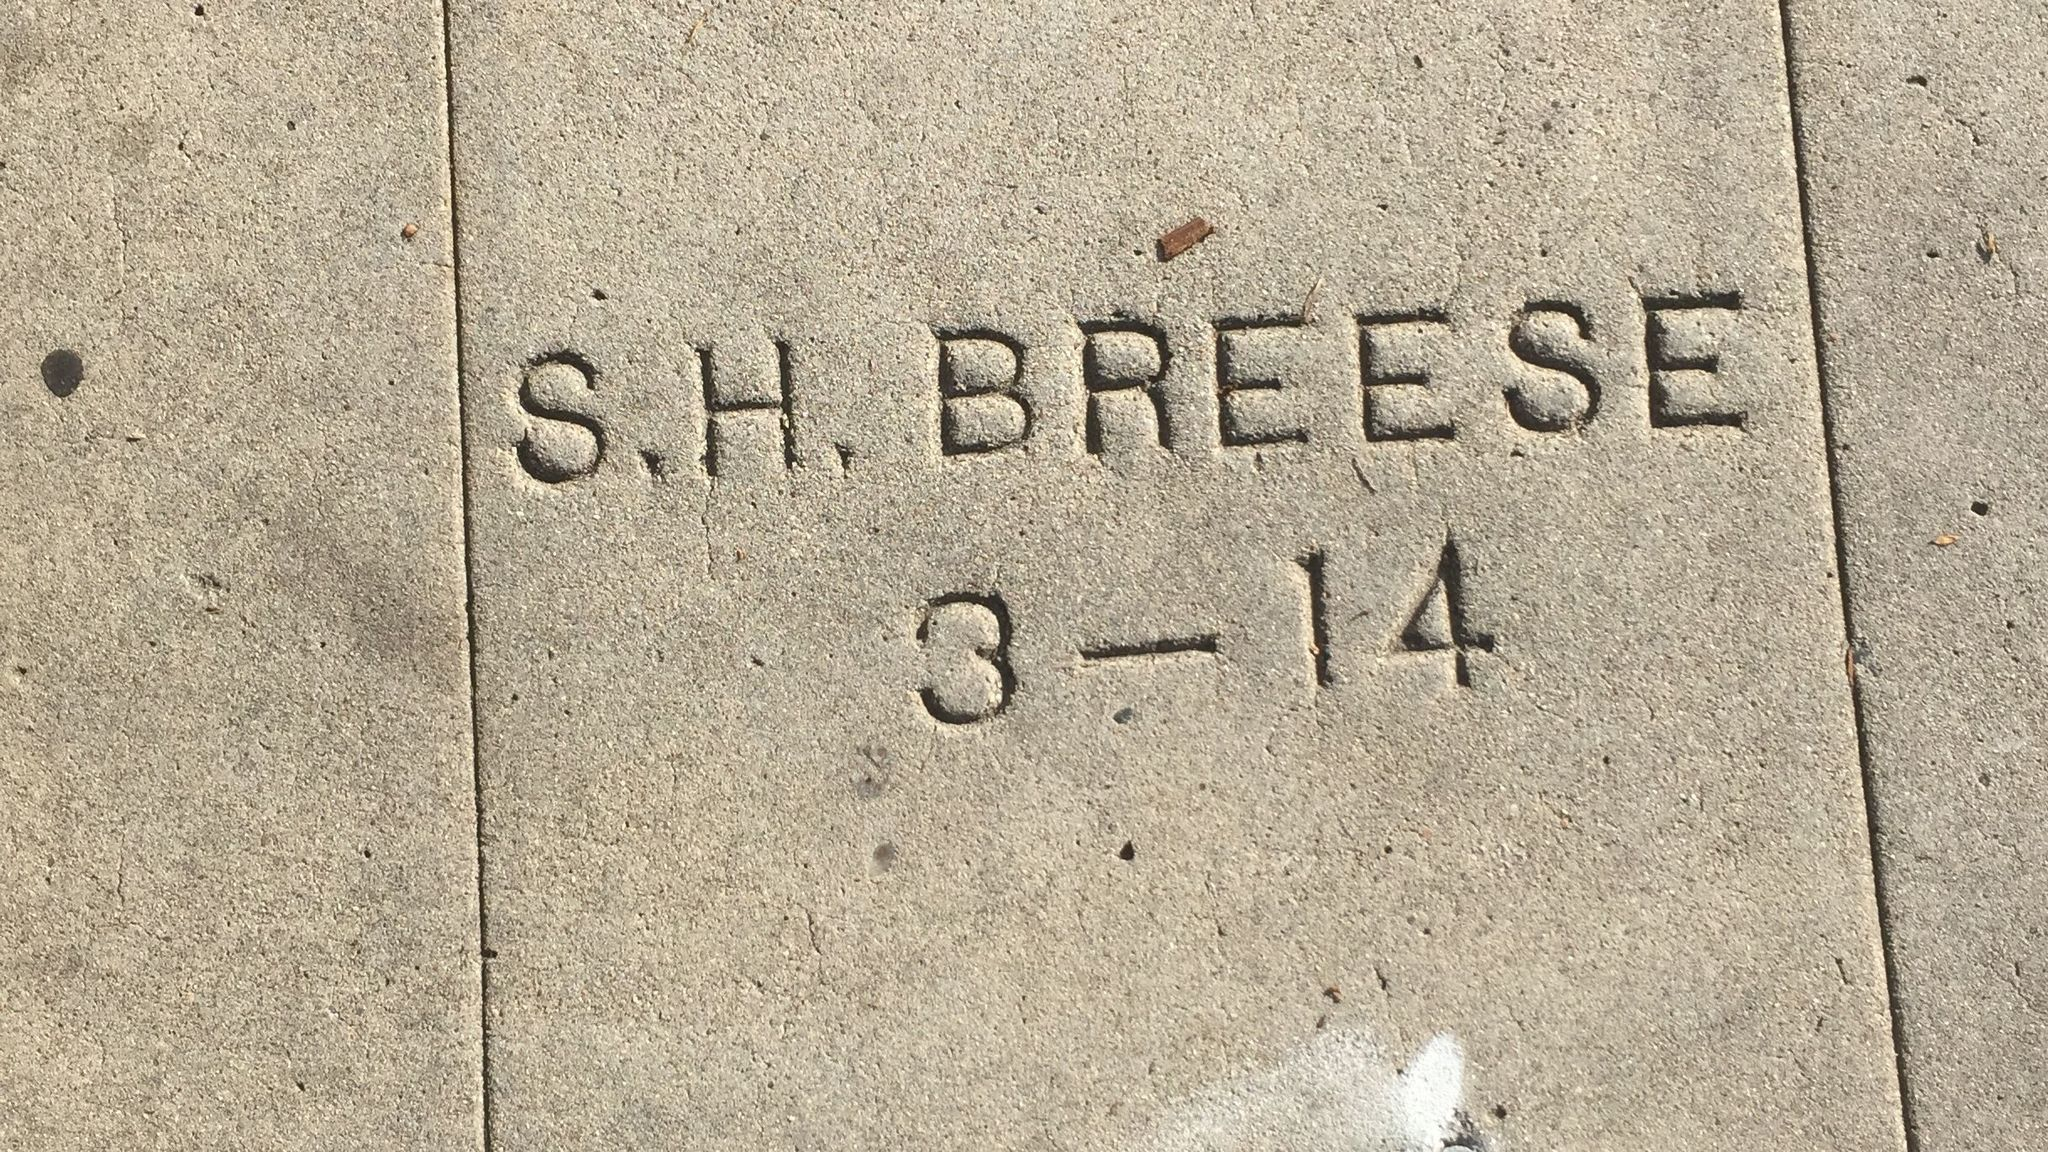 A tinge of the original pink favored by famed landscape architect Kate Sessions can still be seen in this sidewalk stamp around Ellen Browning Scripps former home.